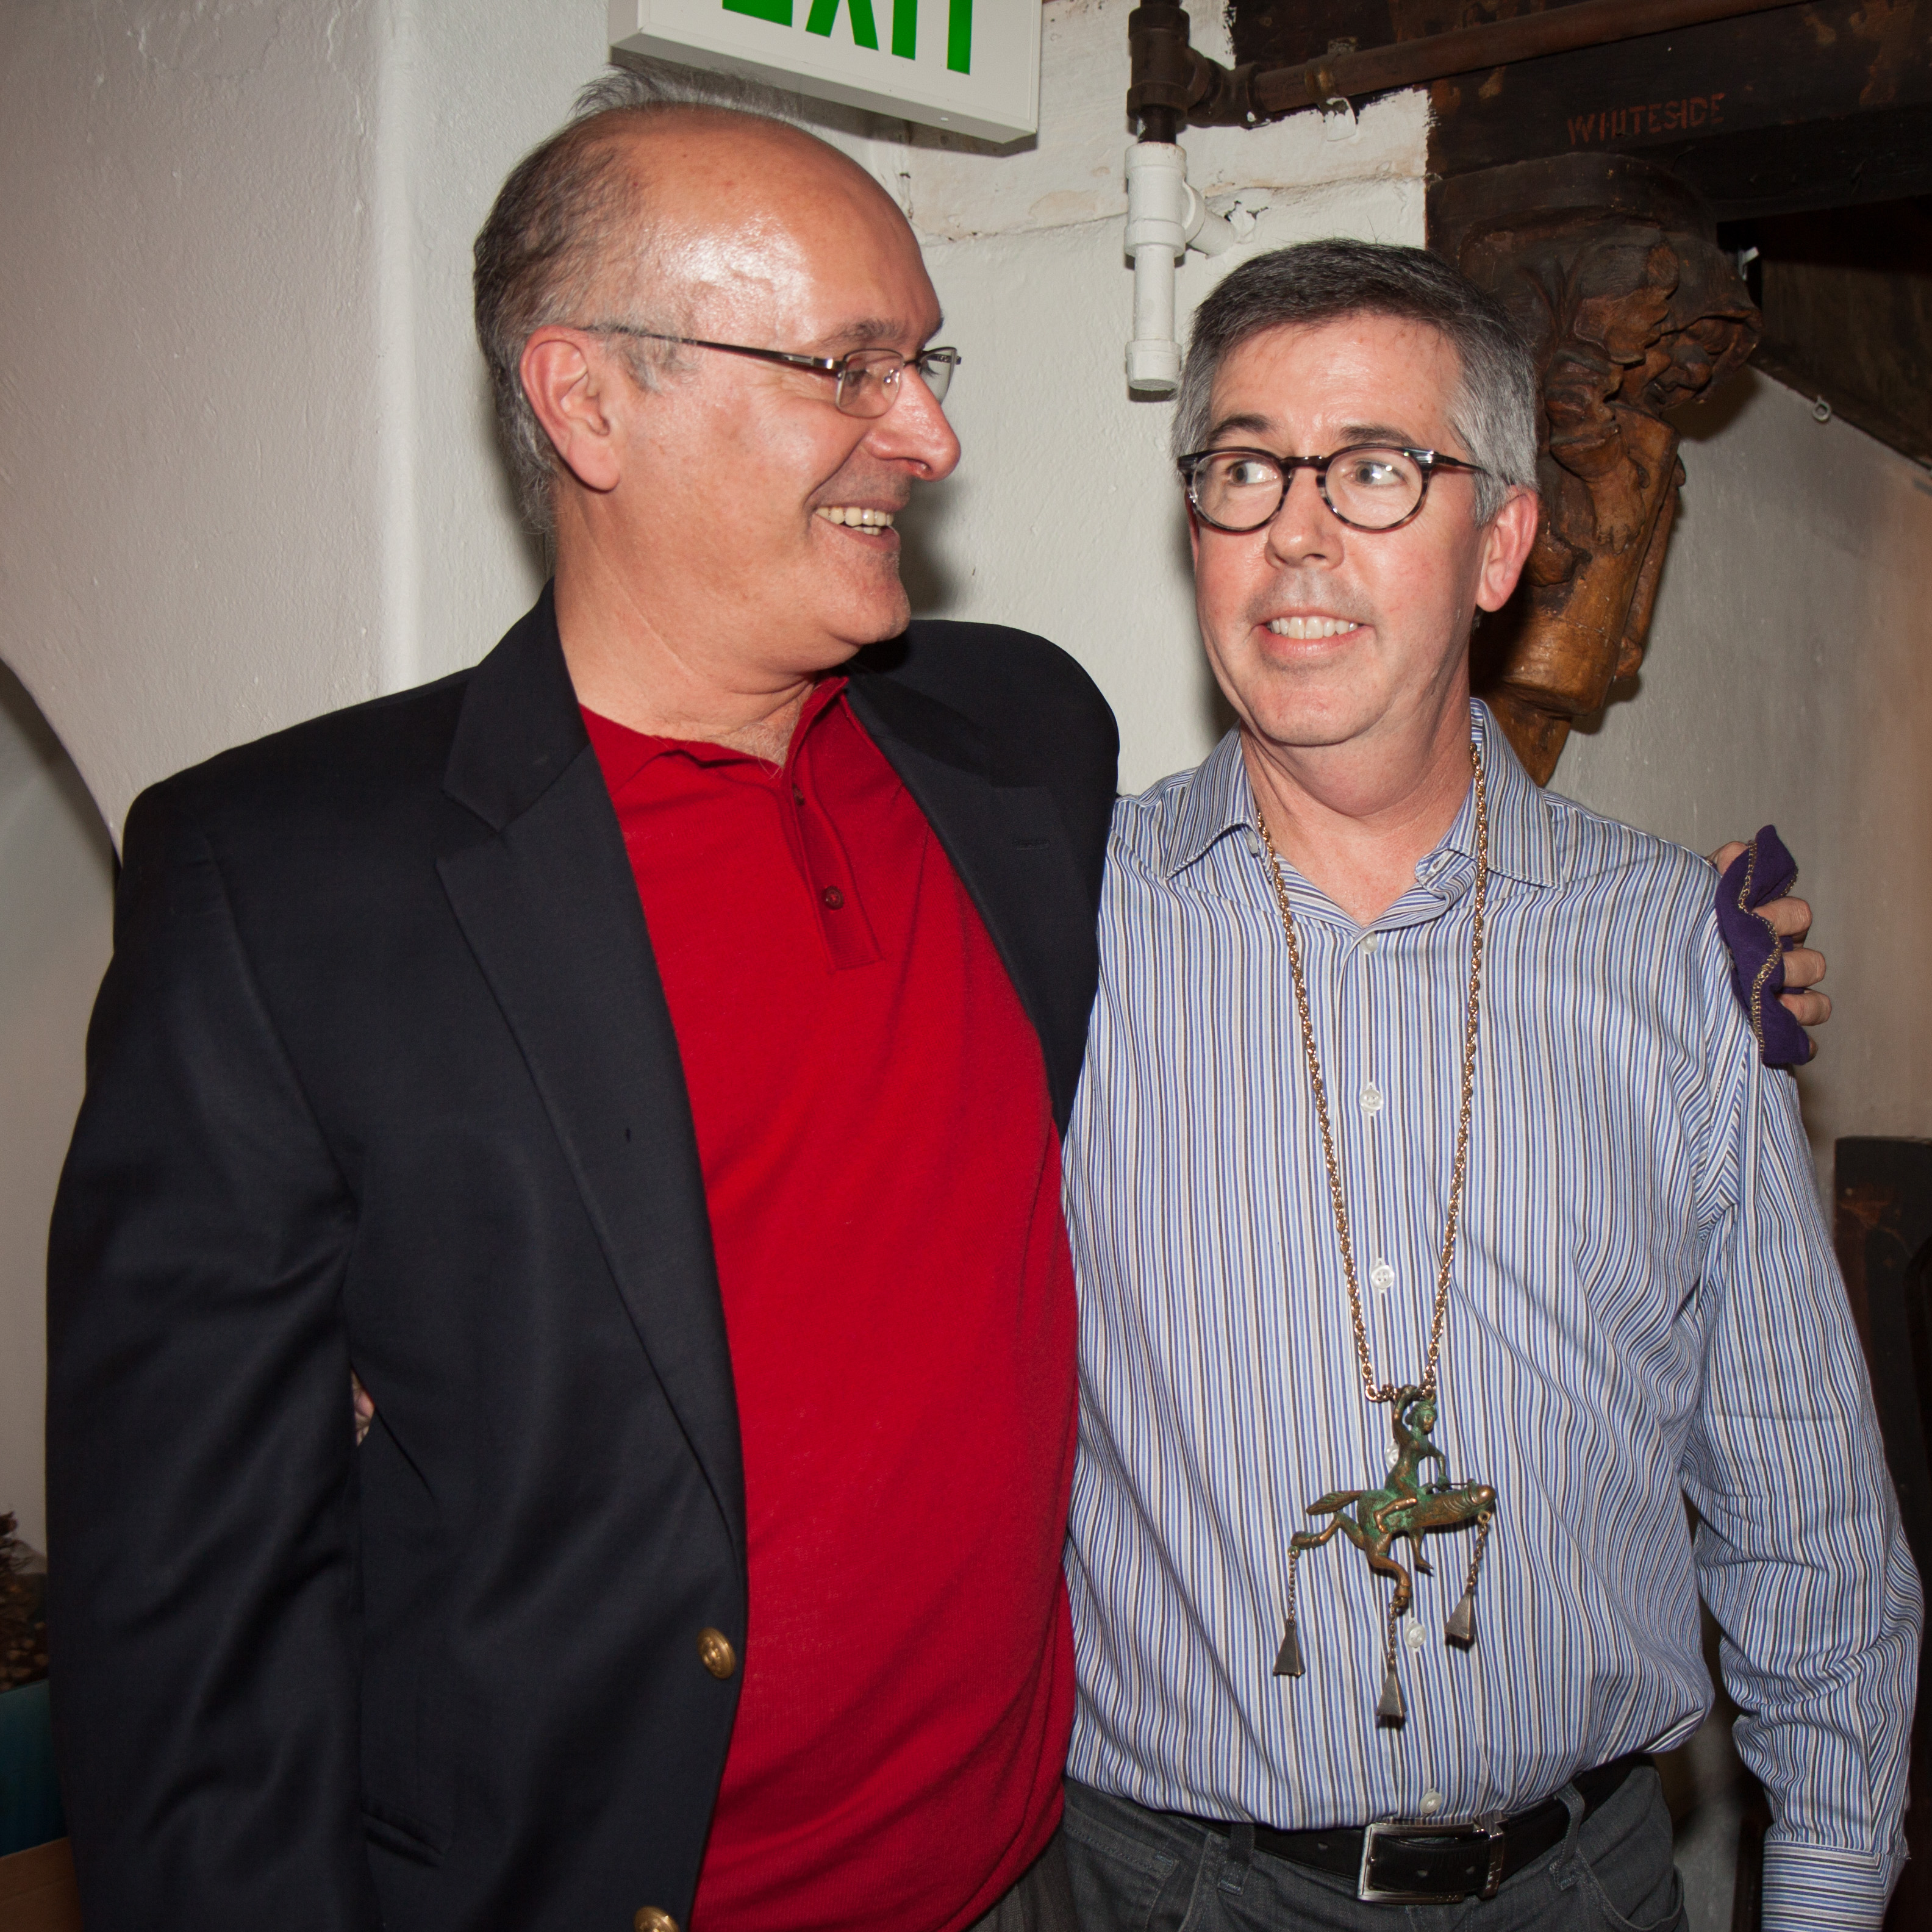 psc-holiday-party-2013-3519